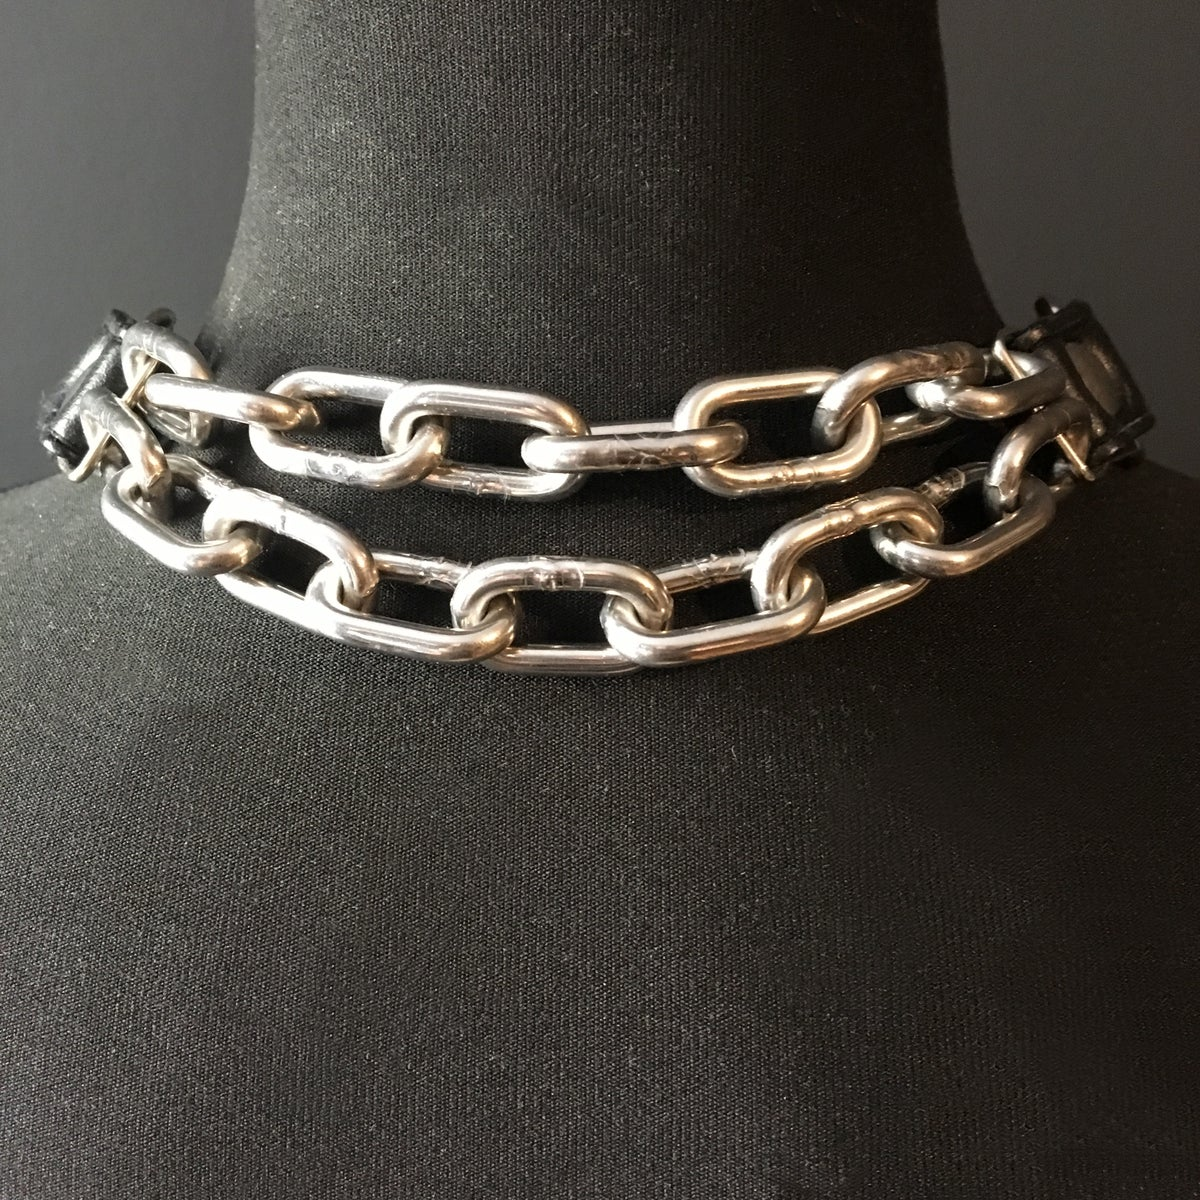 Posture necklace vegan leather and silver